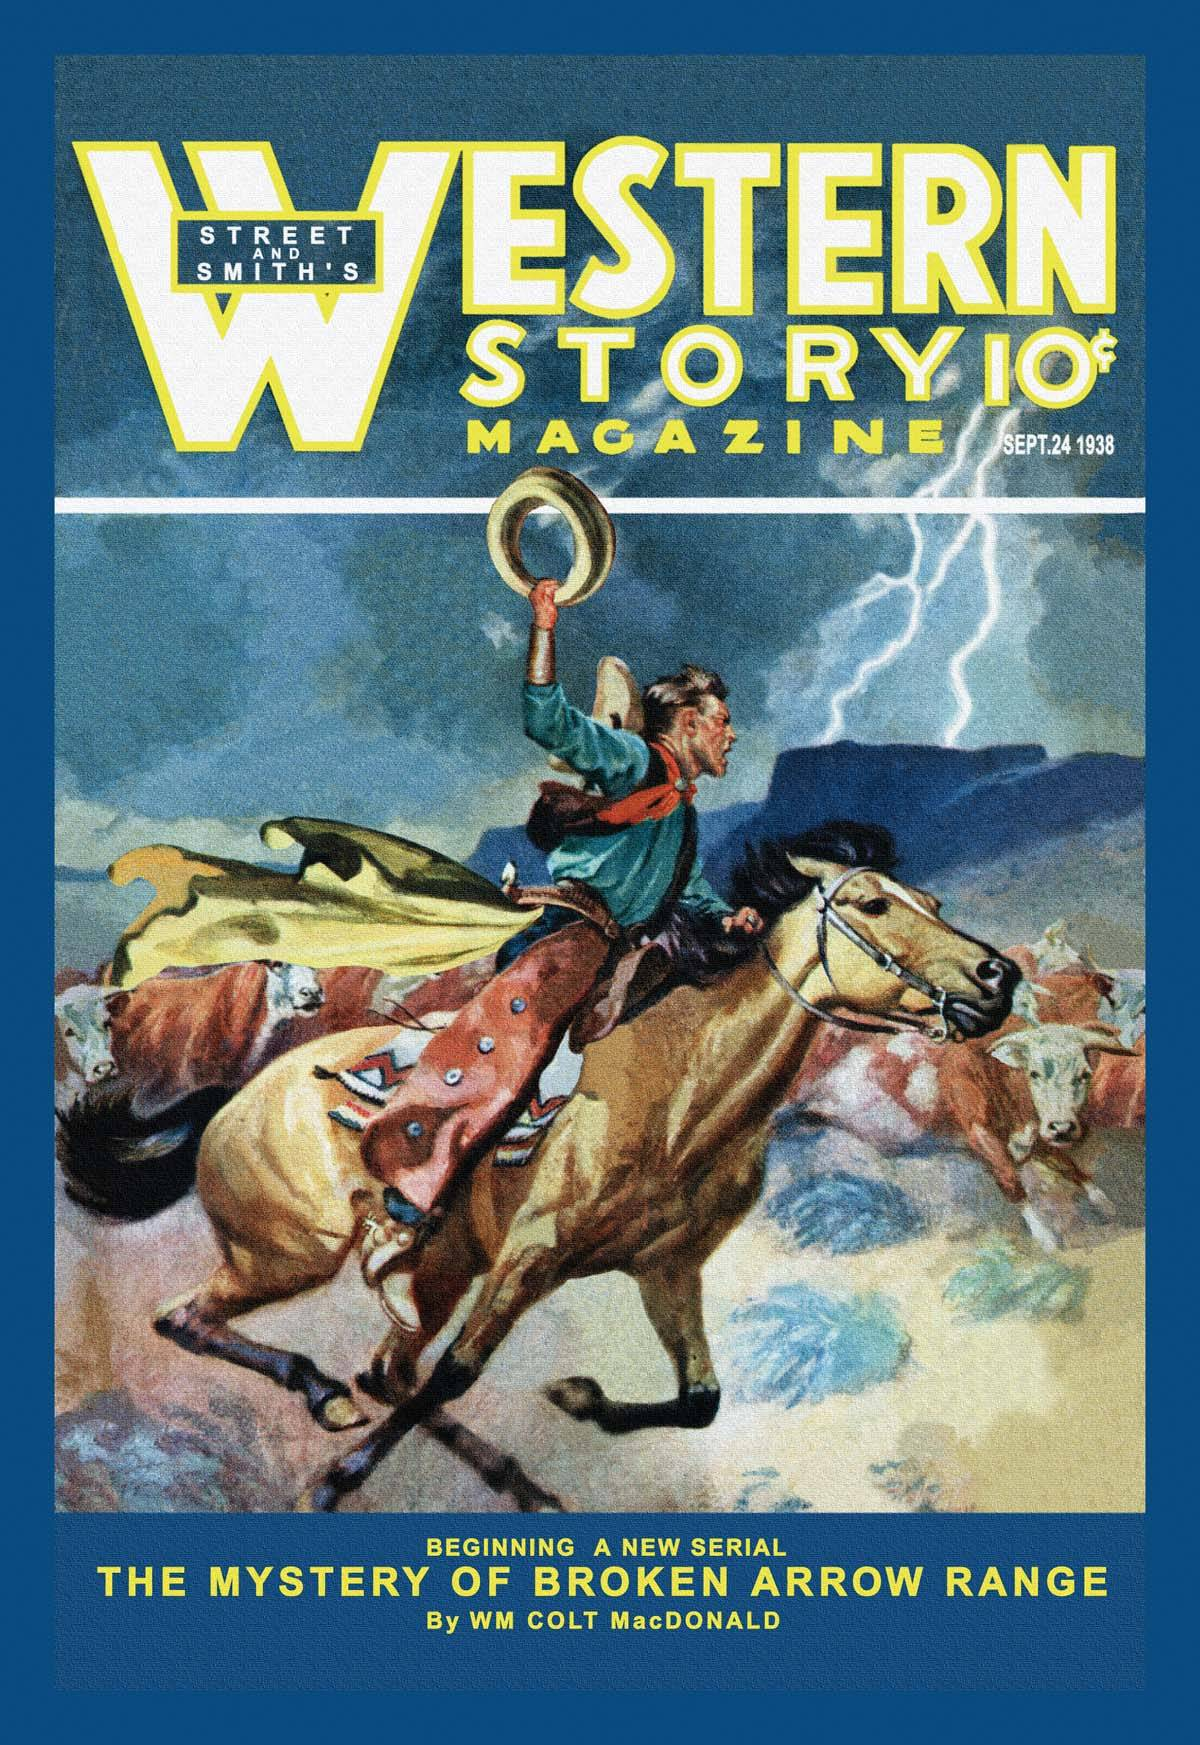 Western Book Cover Art : Western story magazine broken arrow range posters and